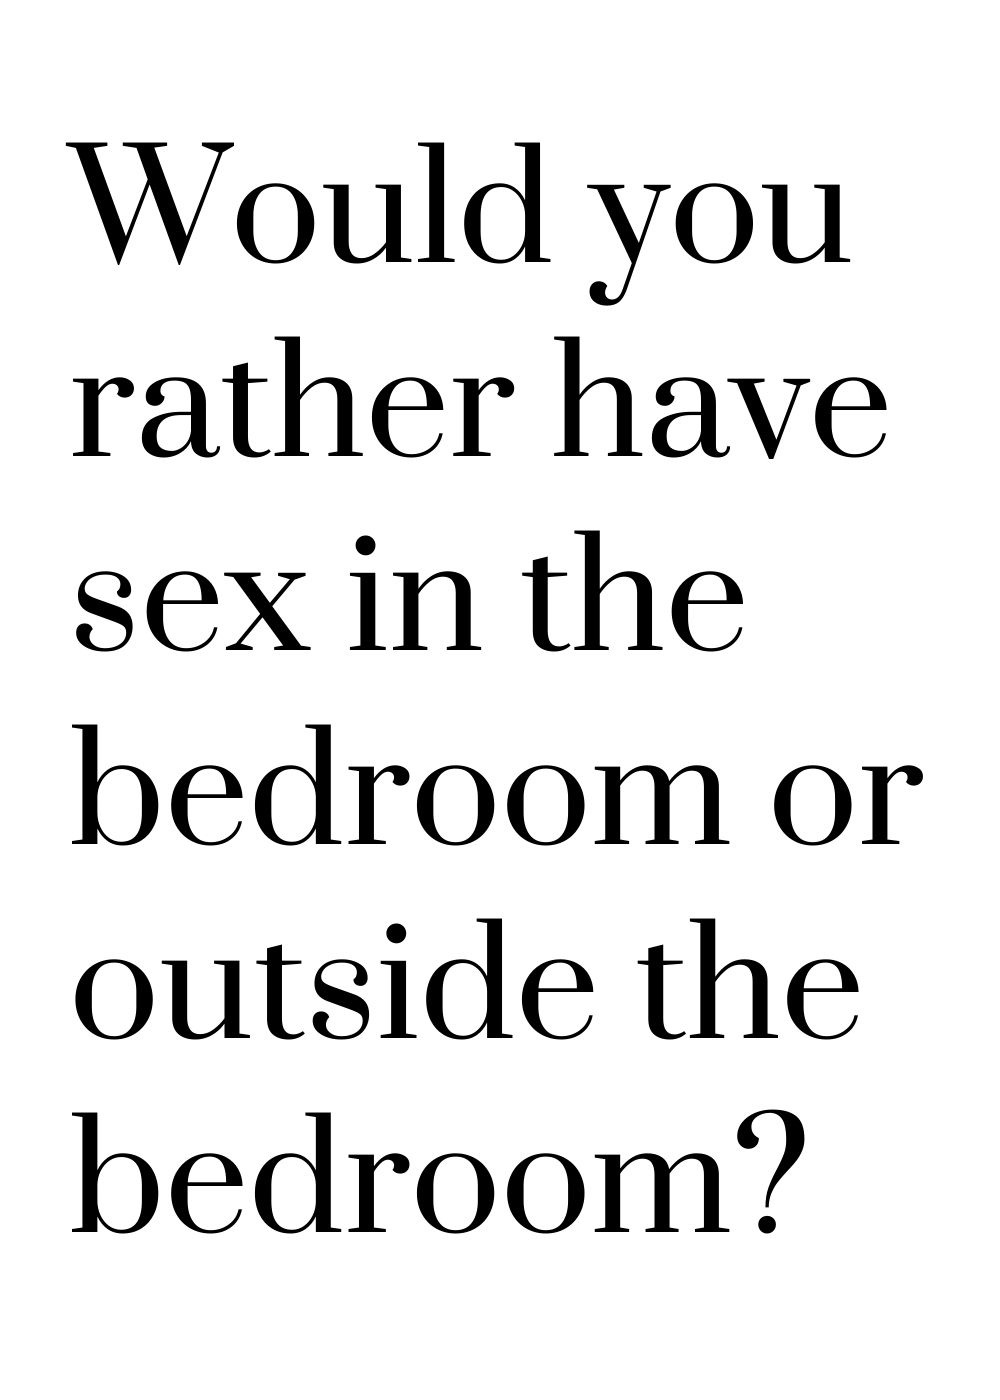 would you rather have sex in the bedroom or outside the bedroom